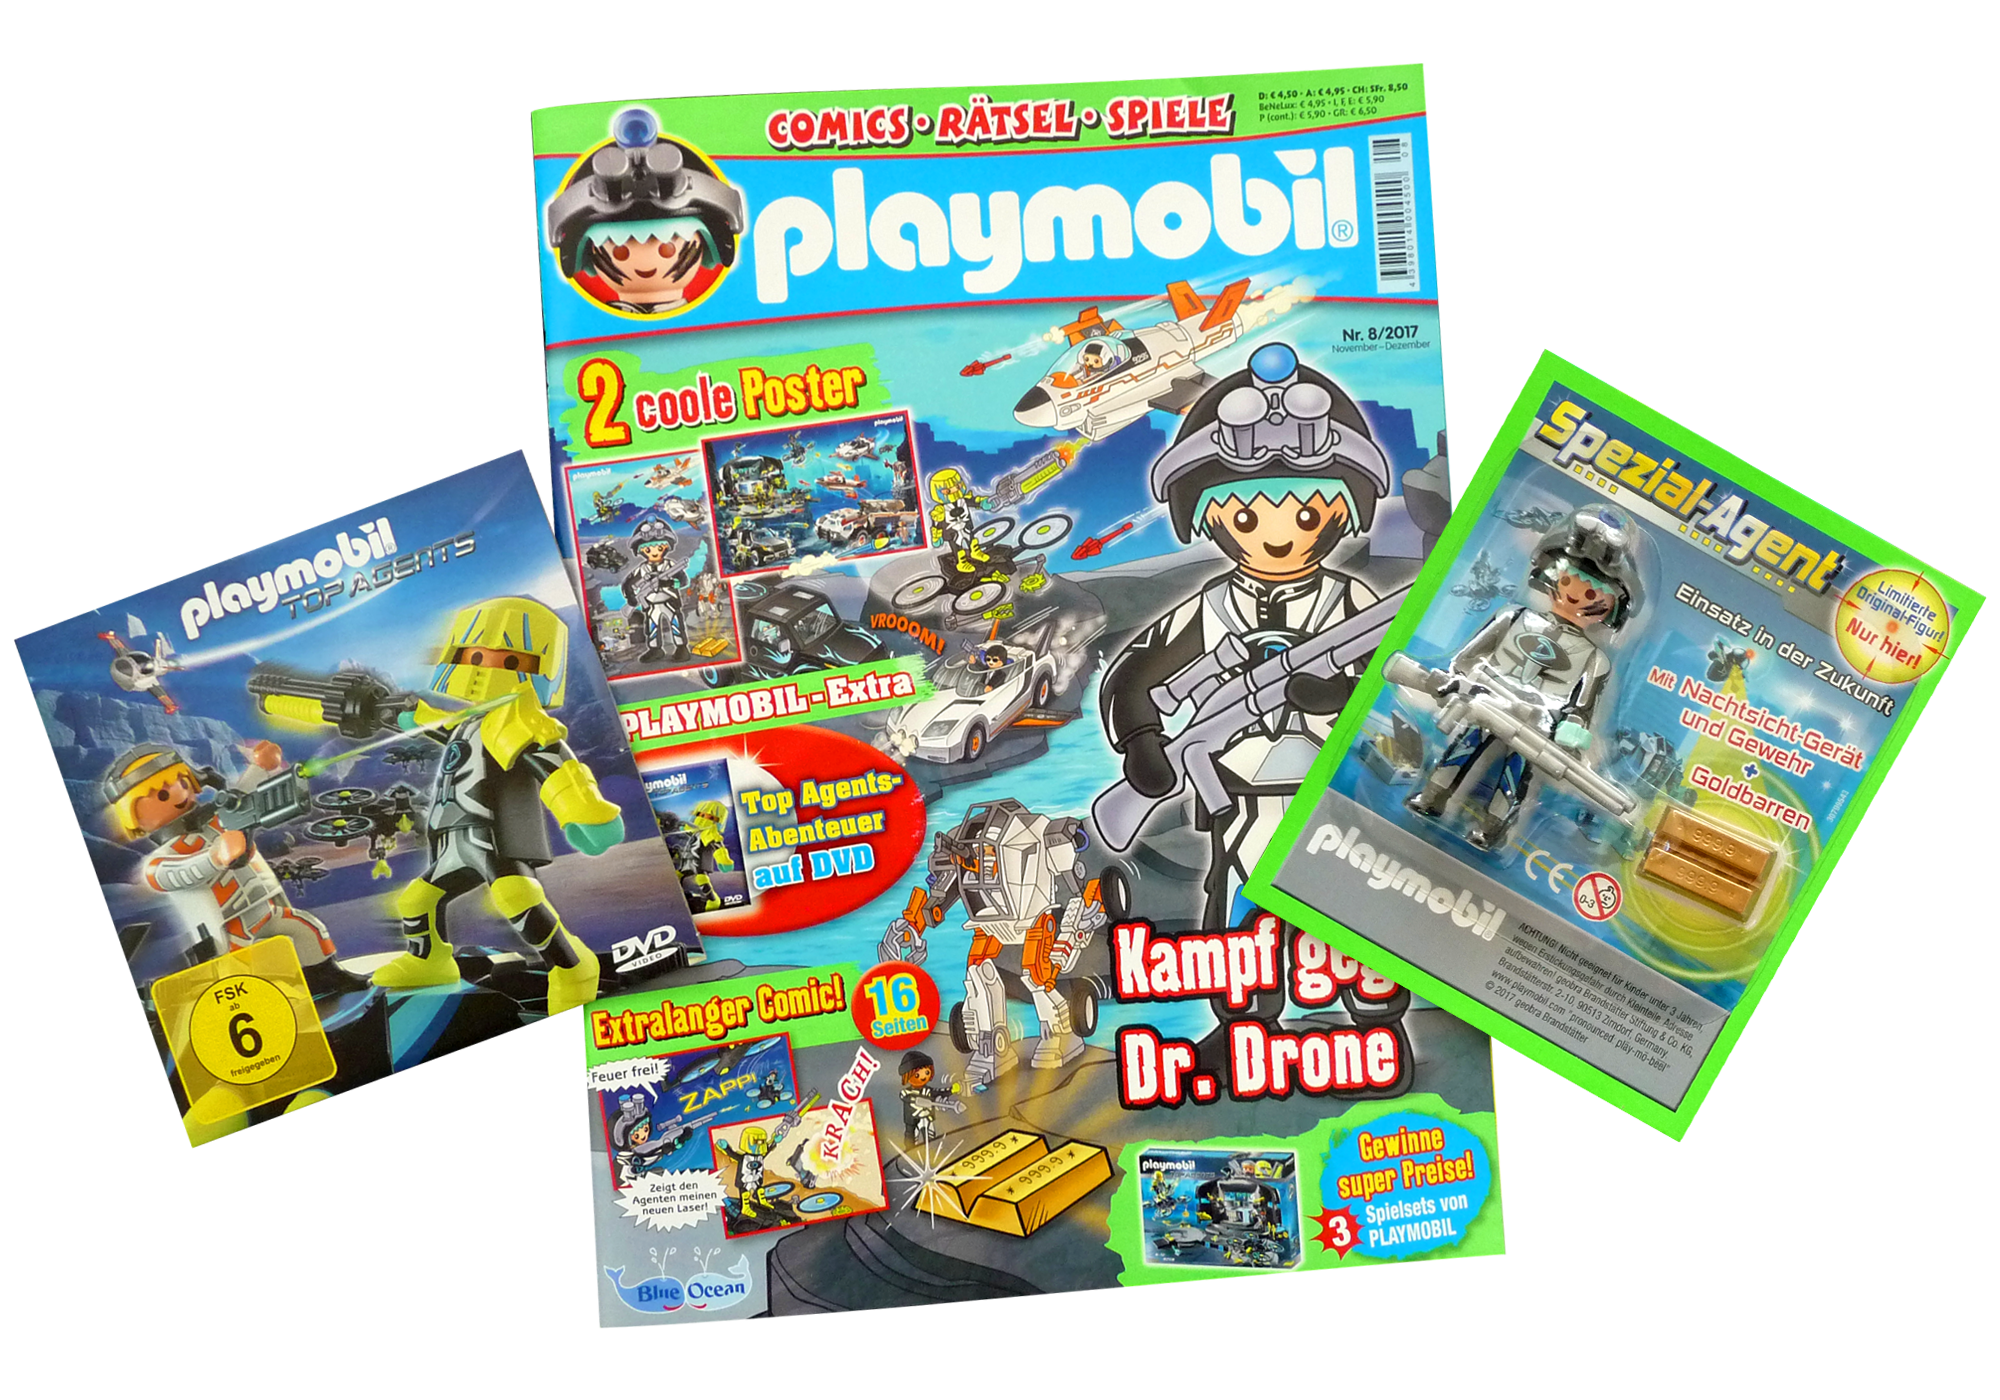 http://media.playmobil.com/i/playmobil/80597_product_detail